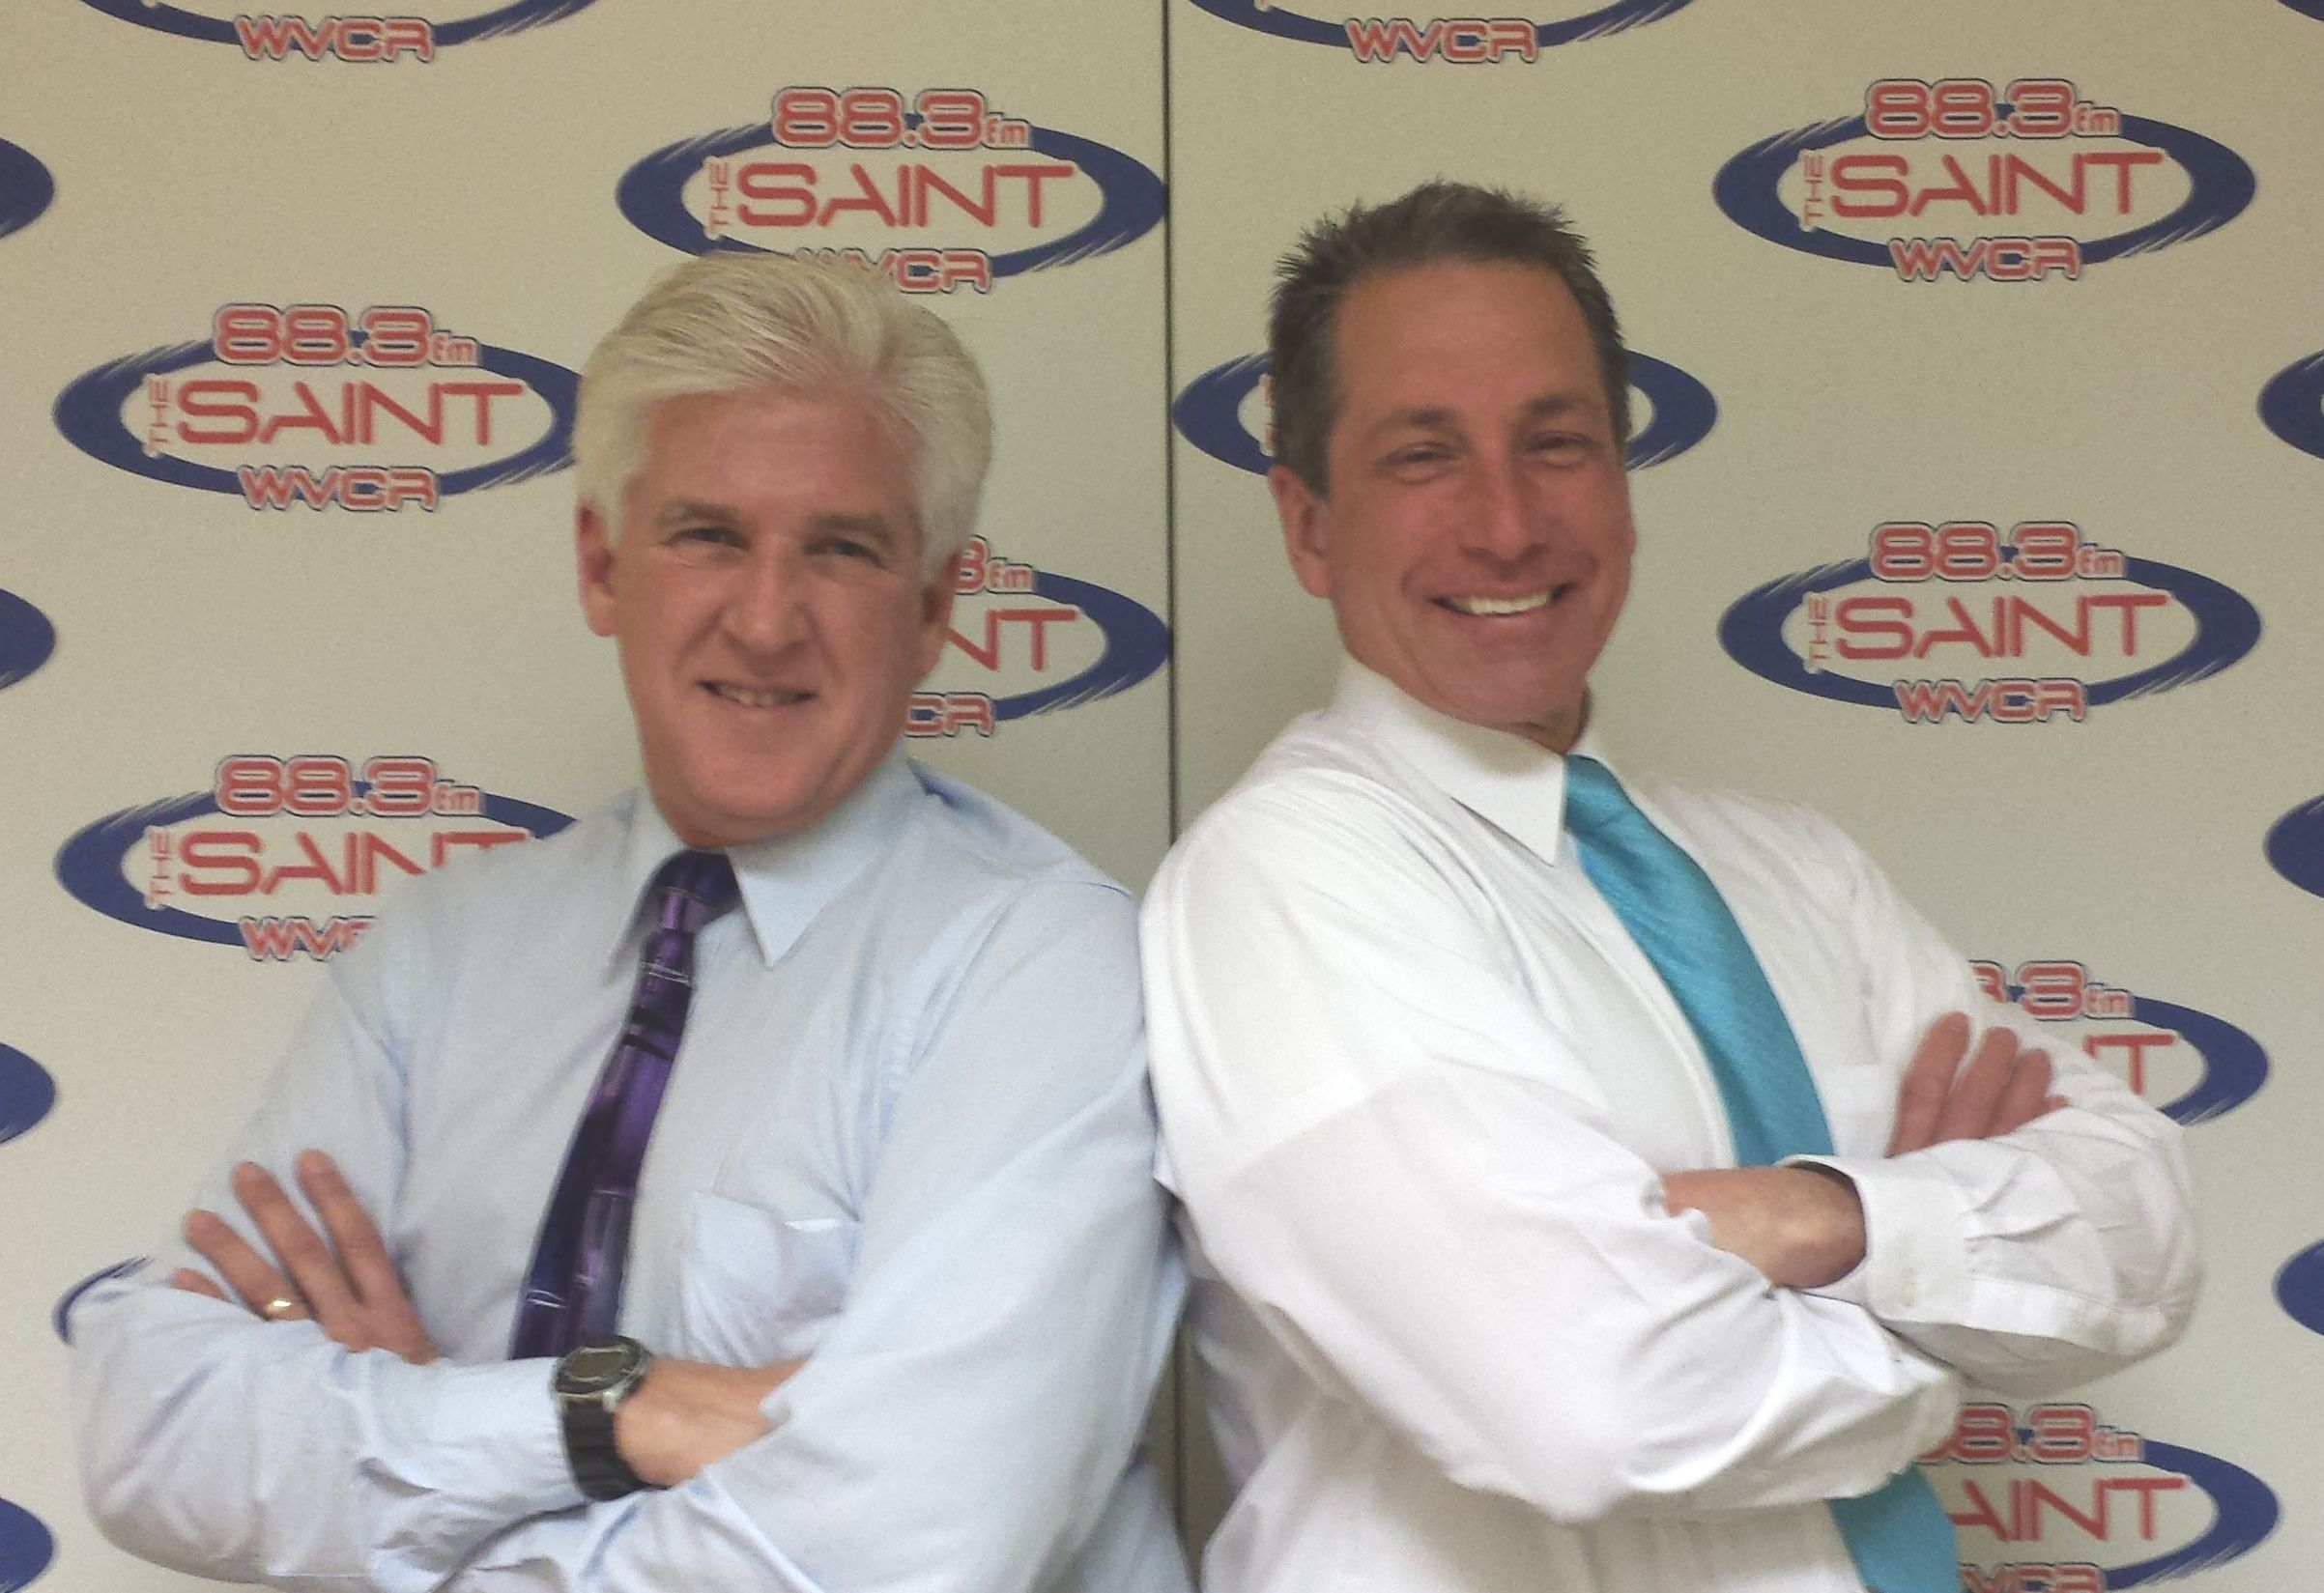 Pin by Mark Grimm on Radio Show | Siena